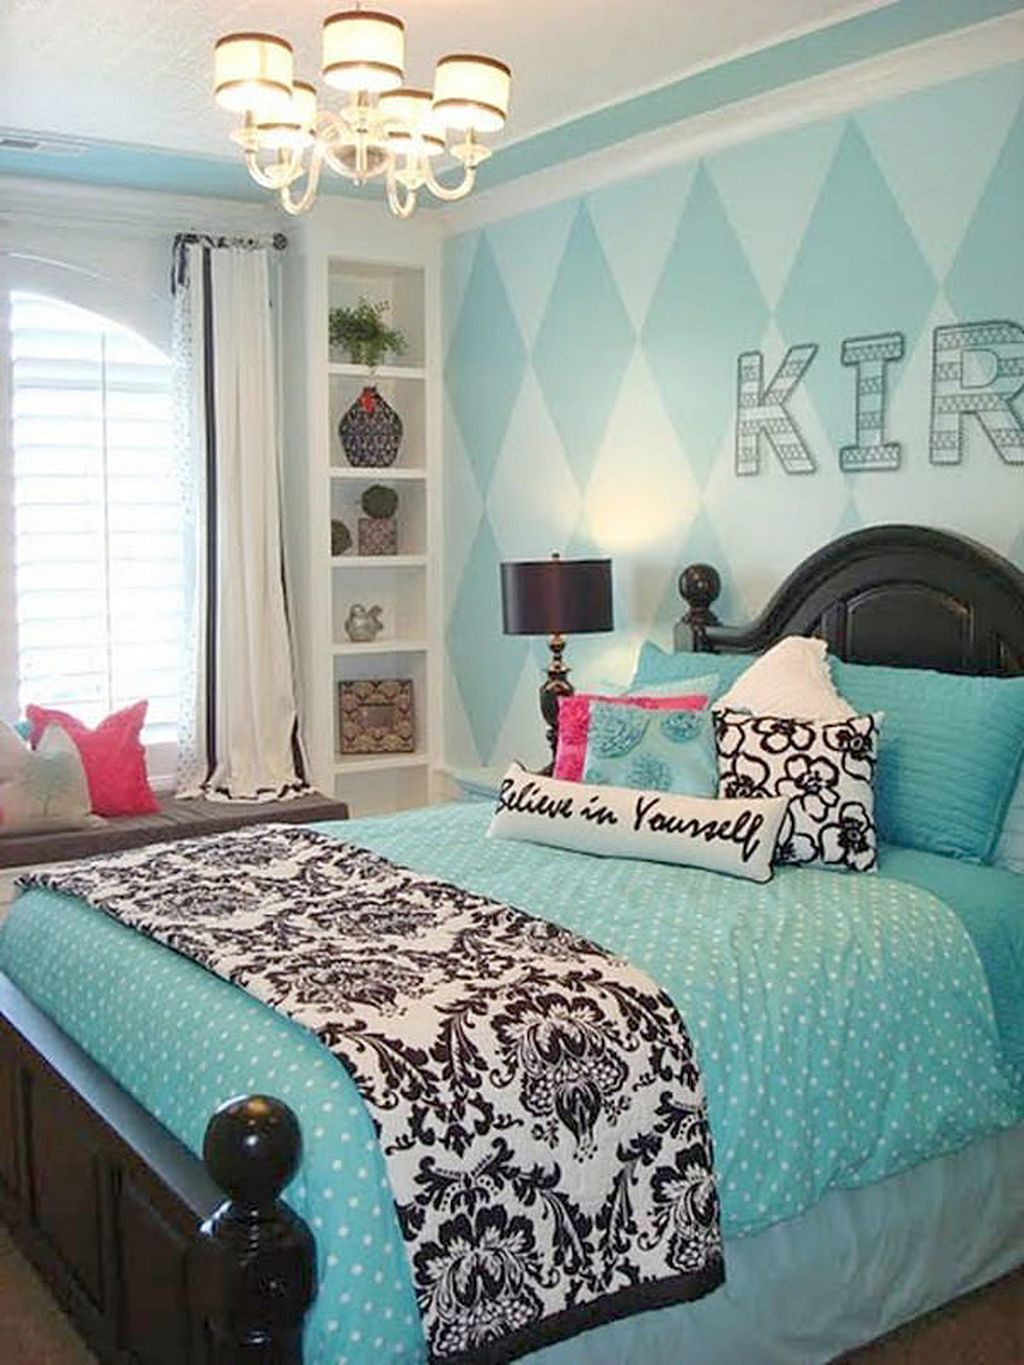 Cool 162 Girly Bedroom Decoration Ideas https://architecturemagz.com/162-girly-bedroom-decoration-ideas/